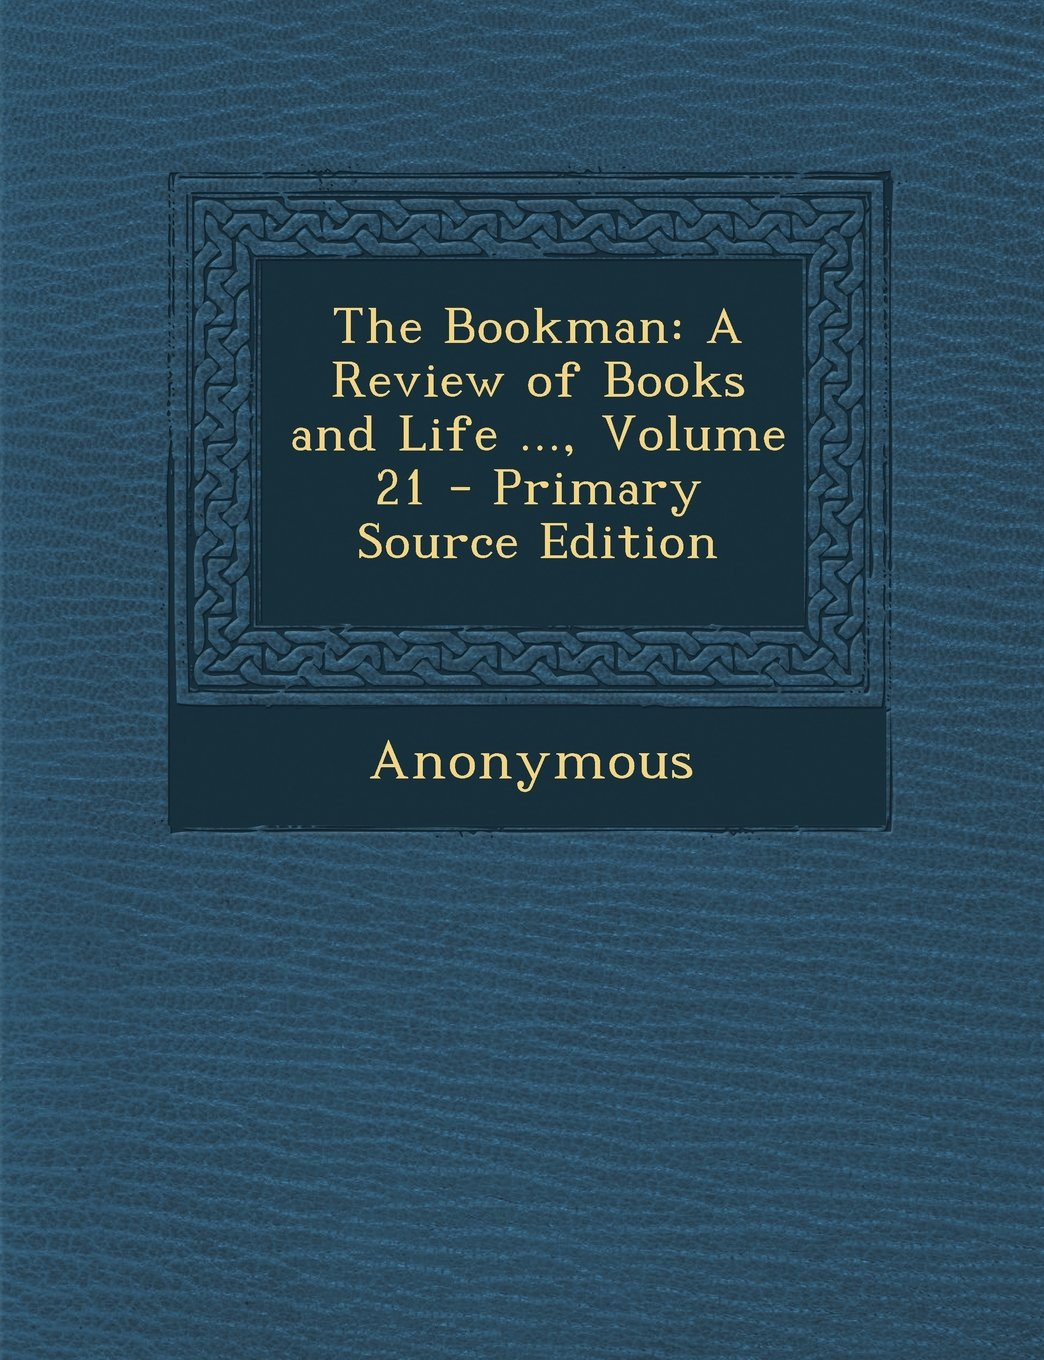 The Bookman: A Review of Books and Life ..., Volume 21 - Primary Source Edition pdf epub